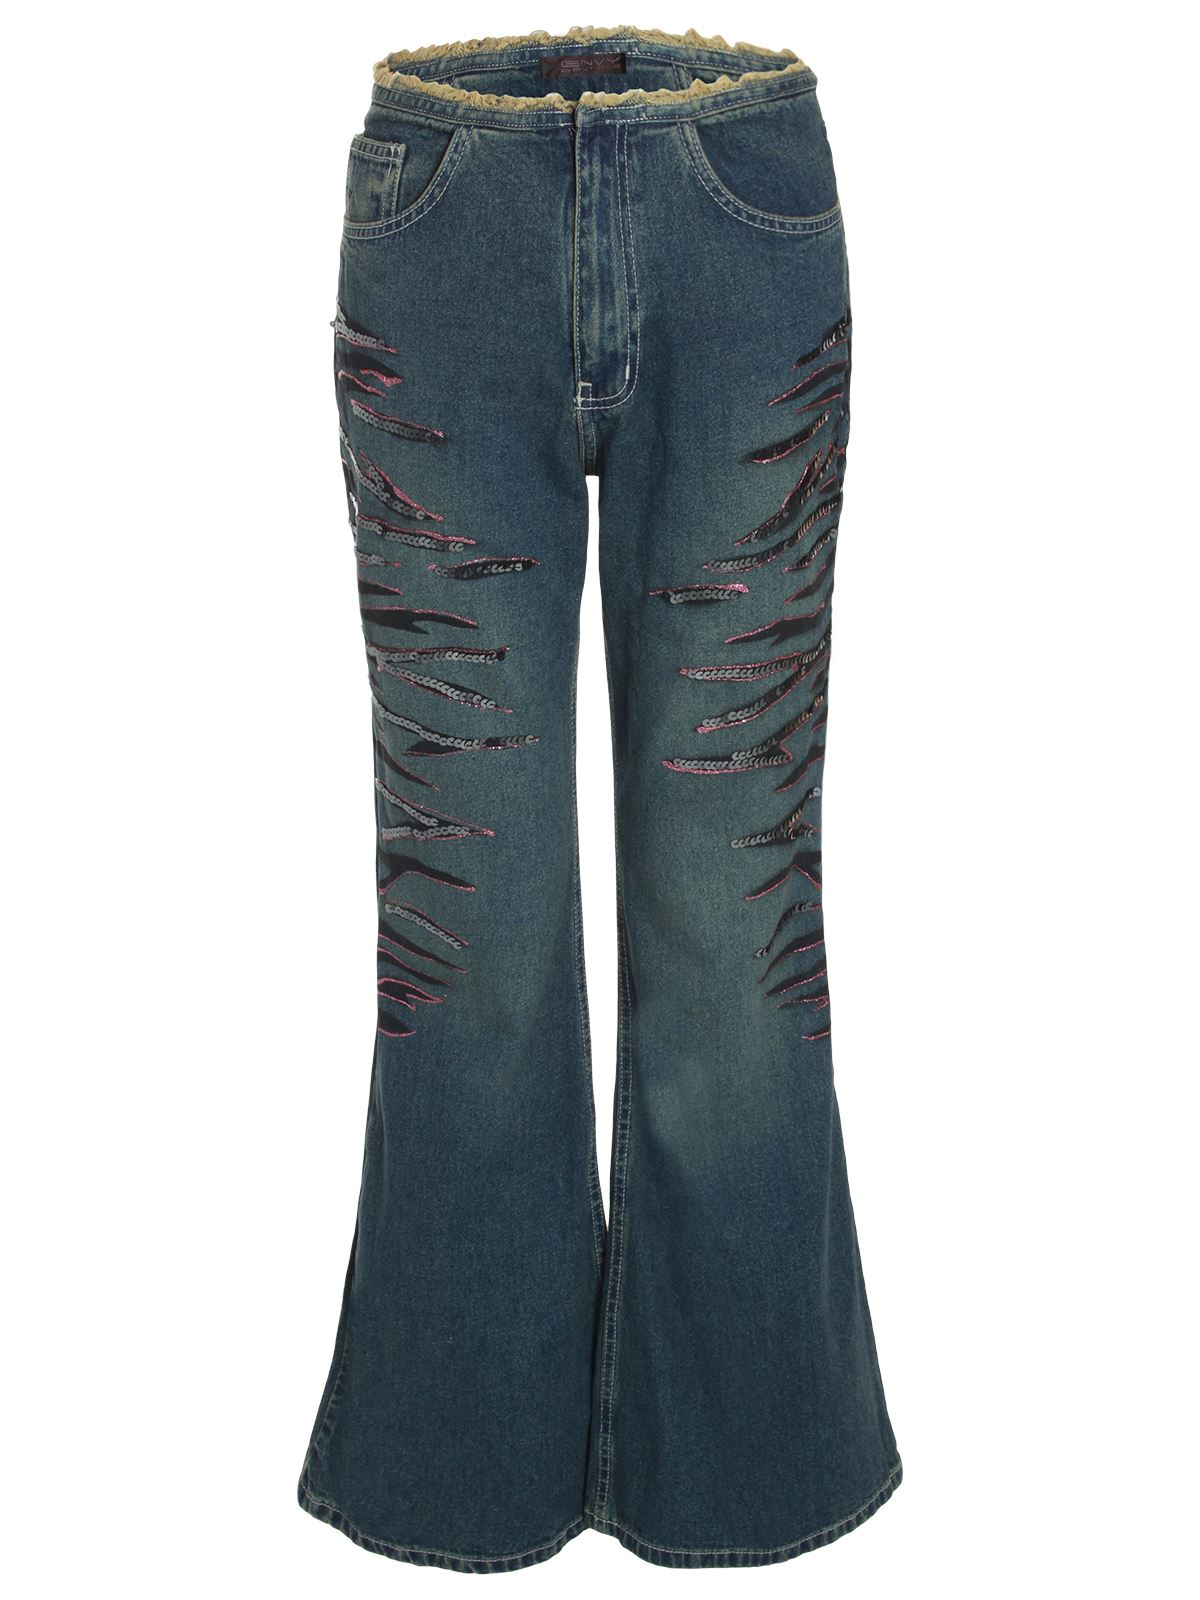 Excellent This Is A Style Of Dressing That Developed In The 50s It Was Propelled By The Rock And Roll And The Sloping Billy Performers Of That Time This Style Is Reemerging Again As Individuals Are Hoping To